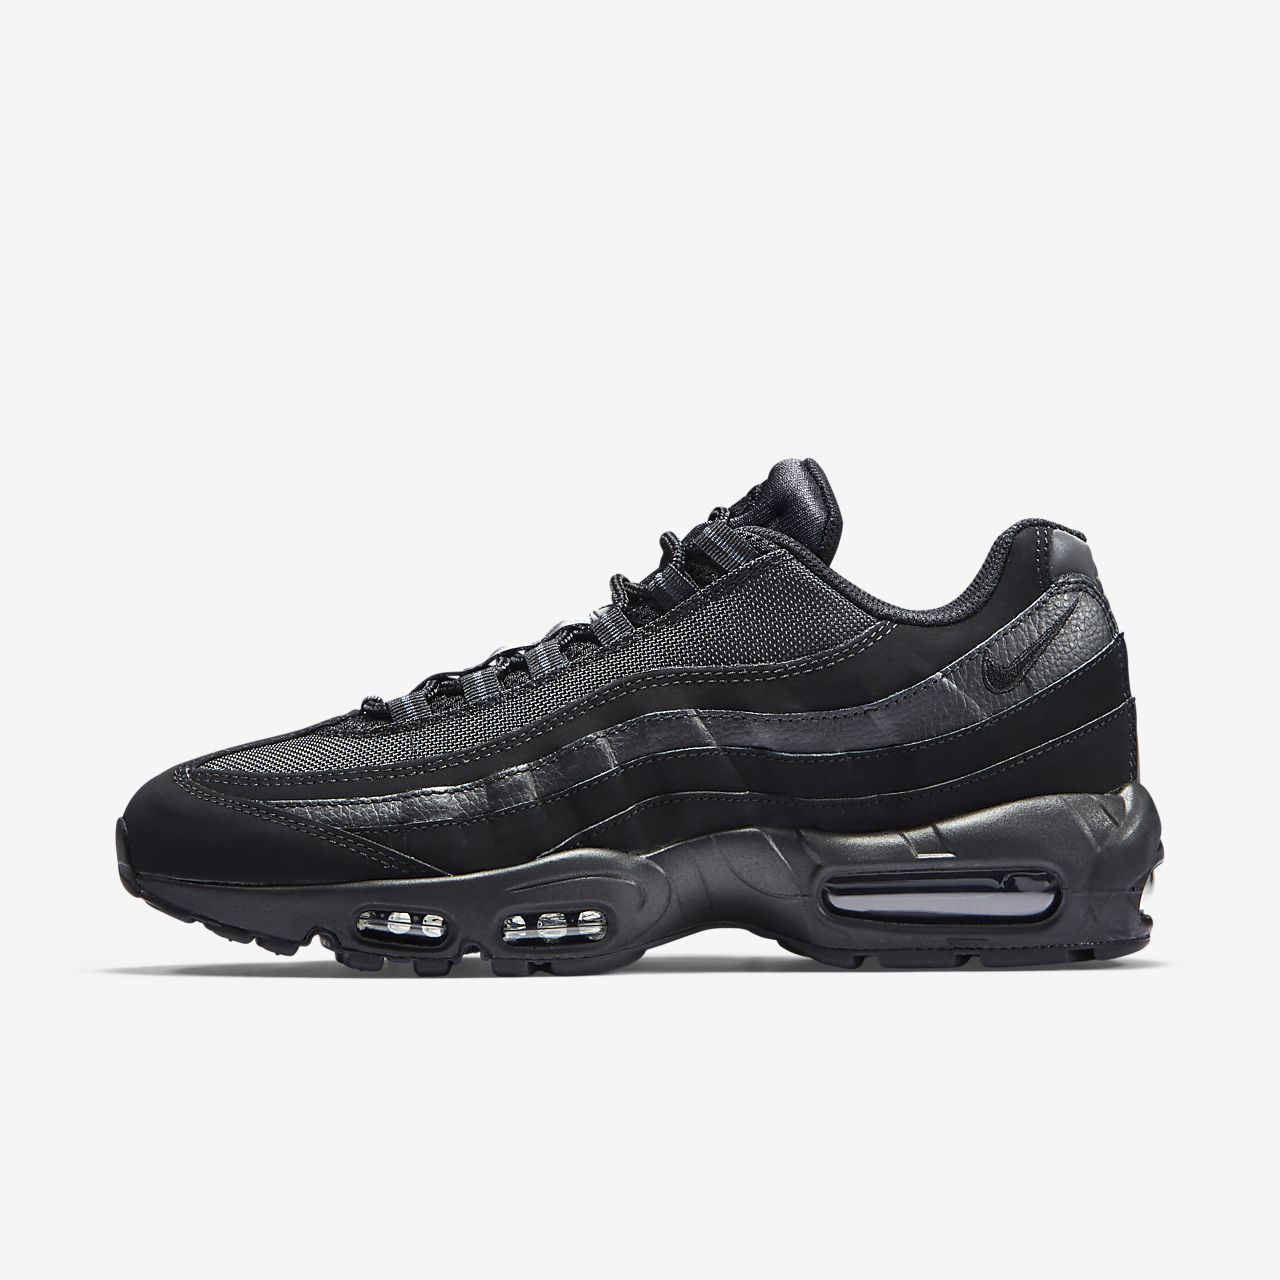 ALLSPORTS: Nike NIKE Air Max 95 sneakers men AIR MAX 95 SE